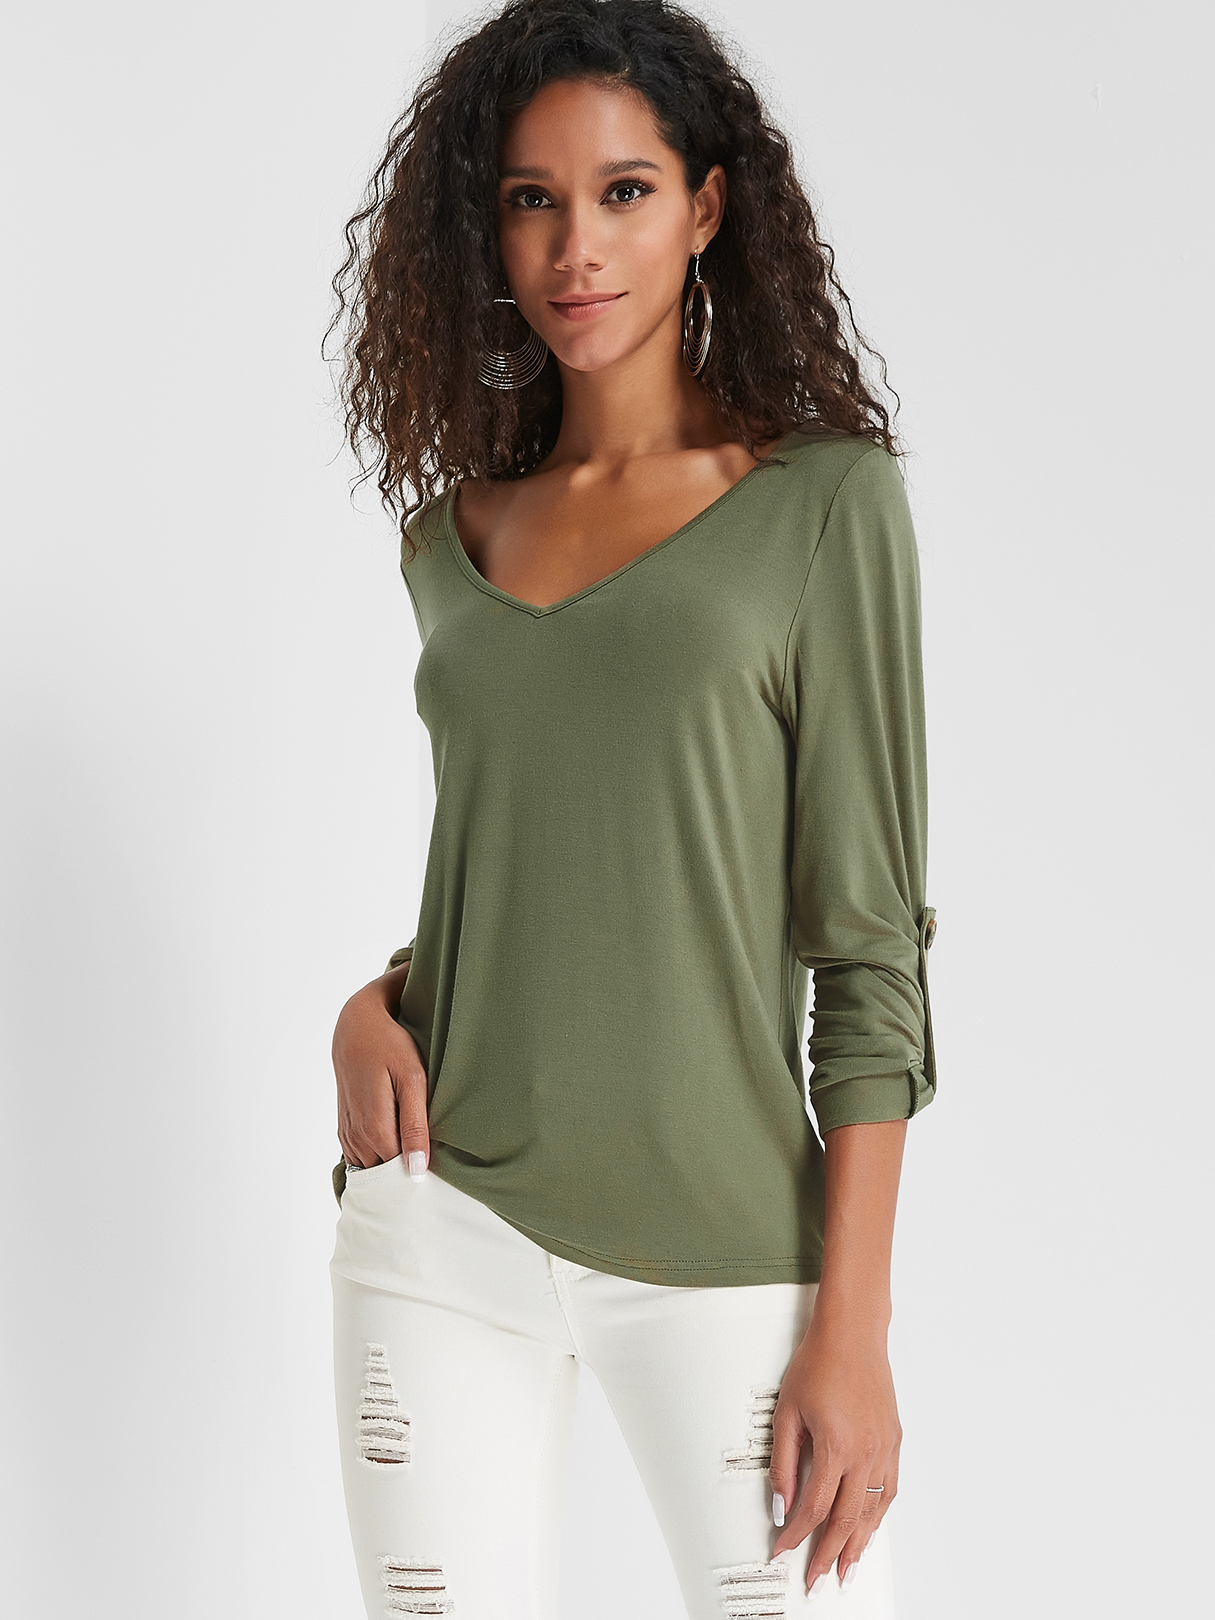 Olive Green V-neck Cozy Tee